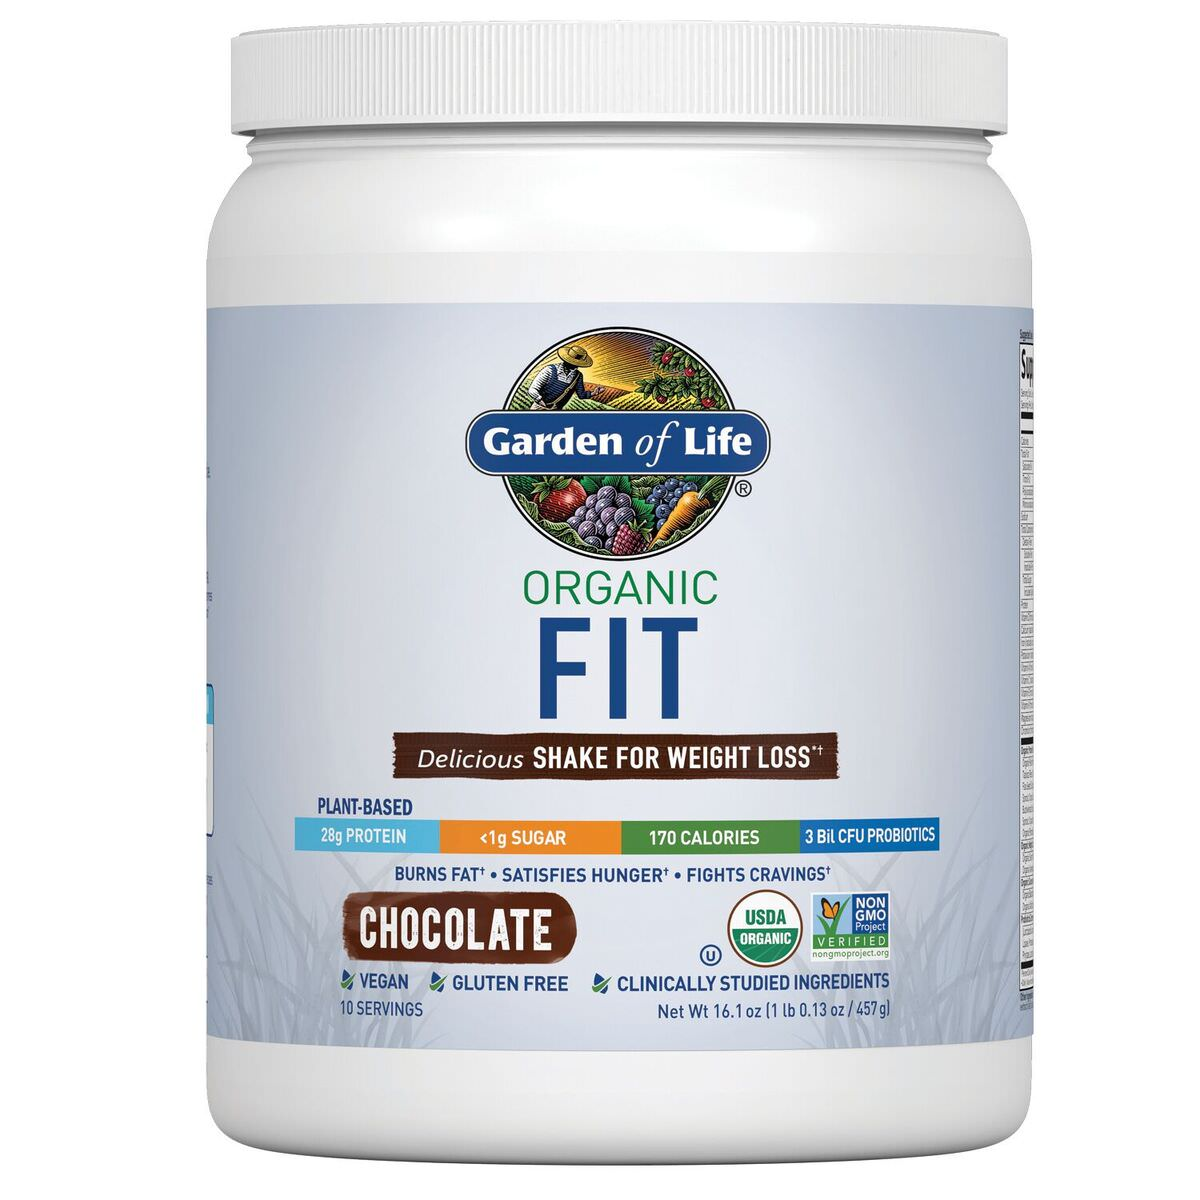 Garden of Life Organic Fit Protein Powder, Chocolate, 1.0 Lb